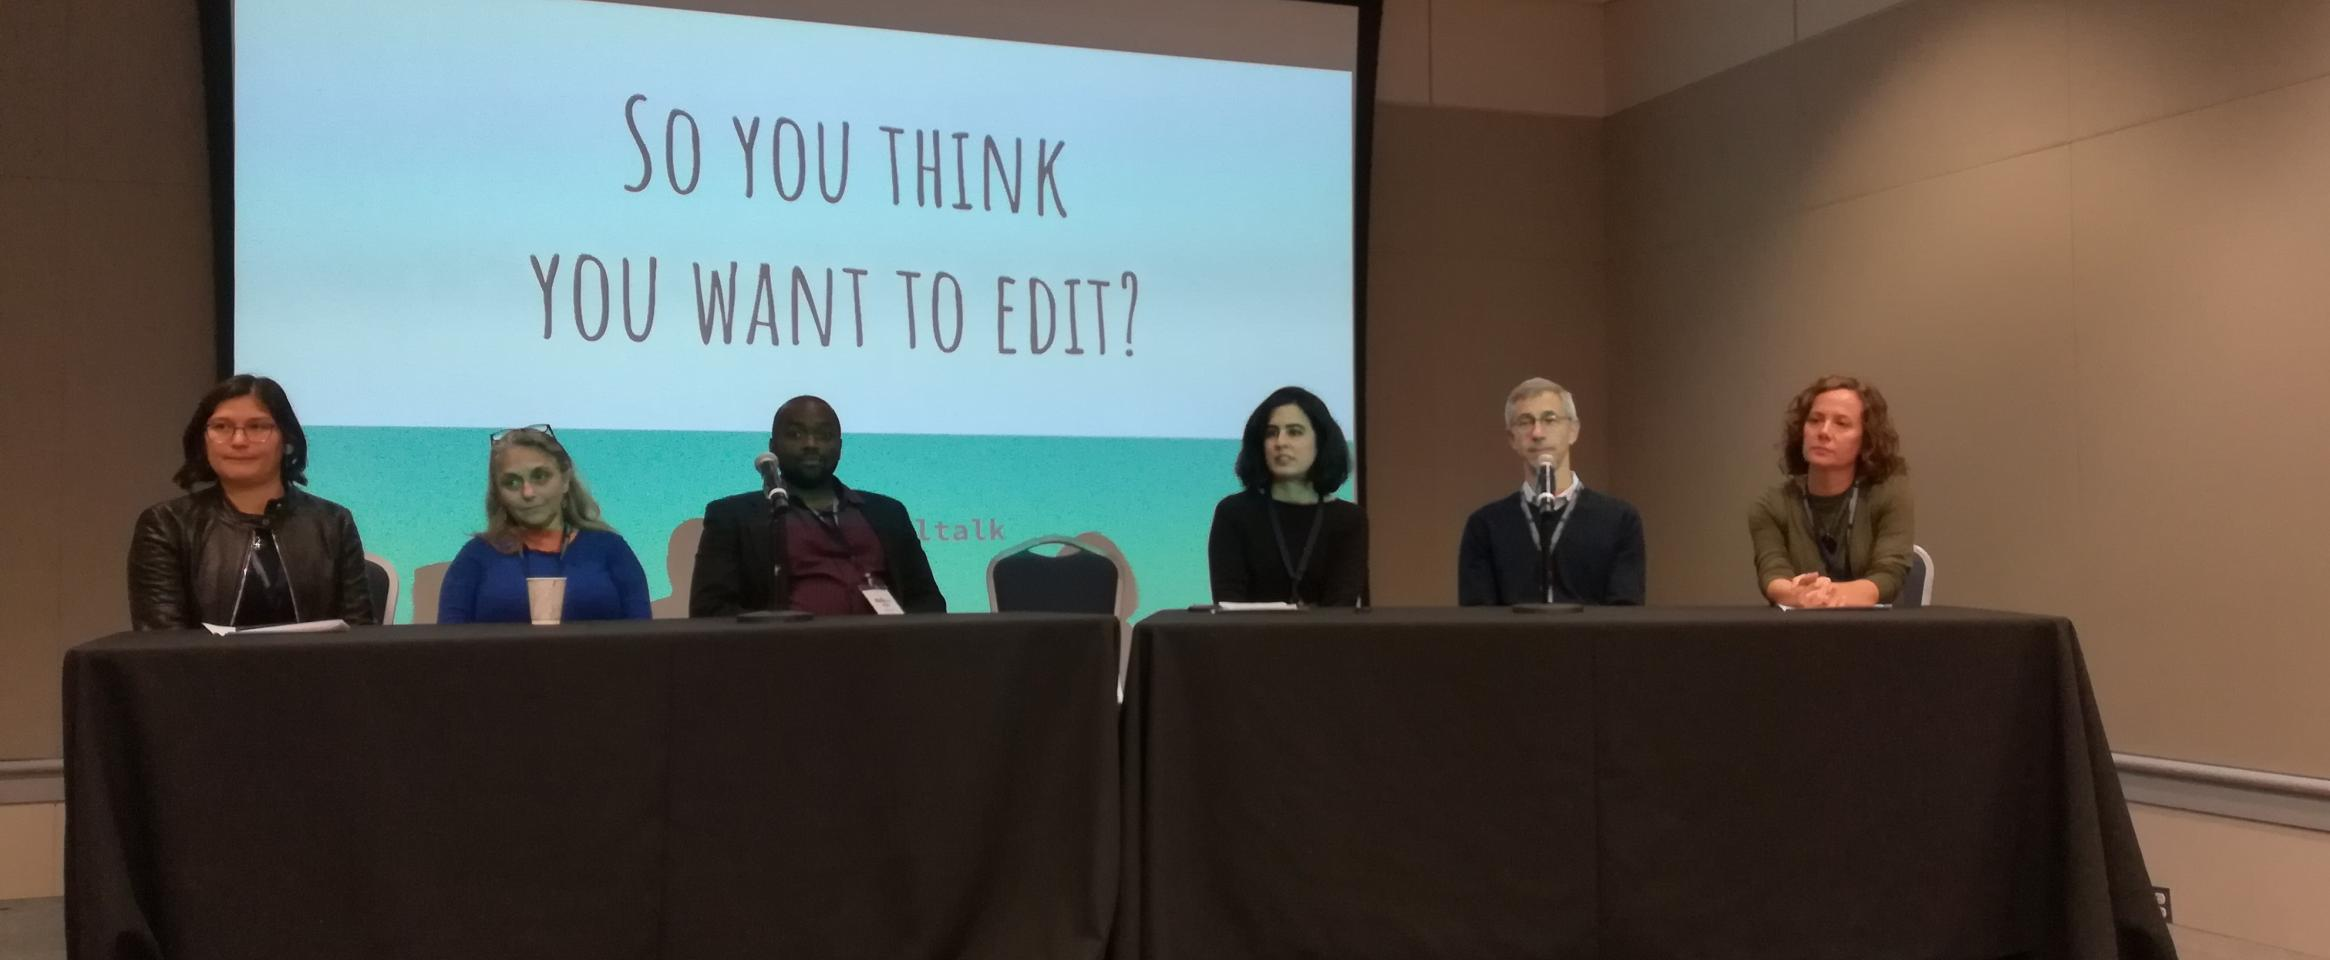 ScienceWriters 2018 panel: So you think you want to edit?